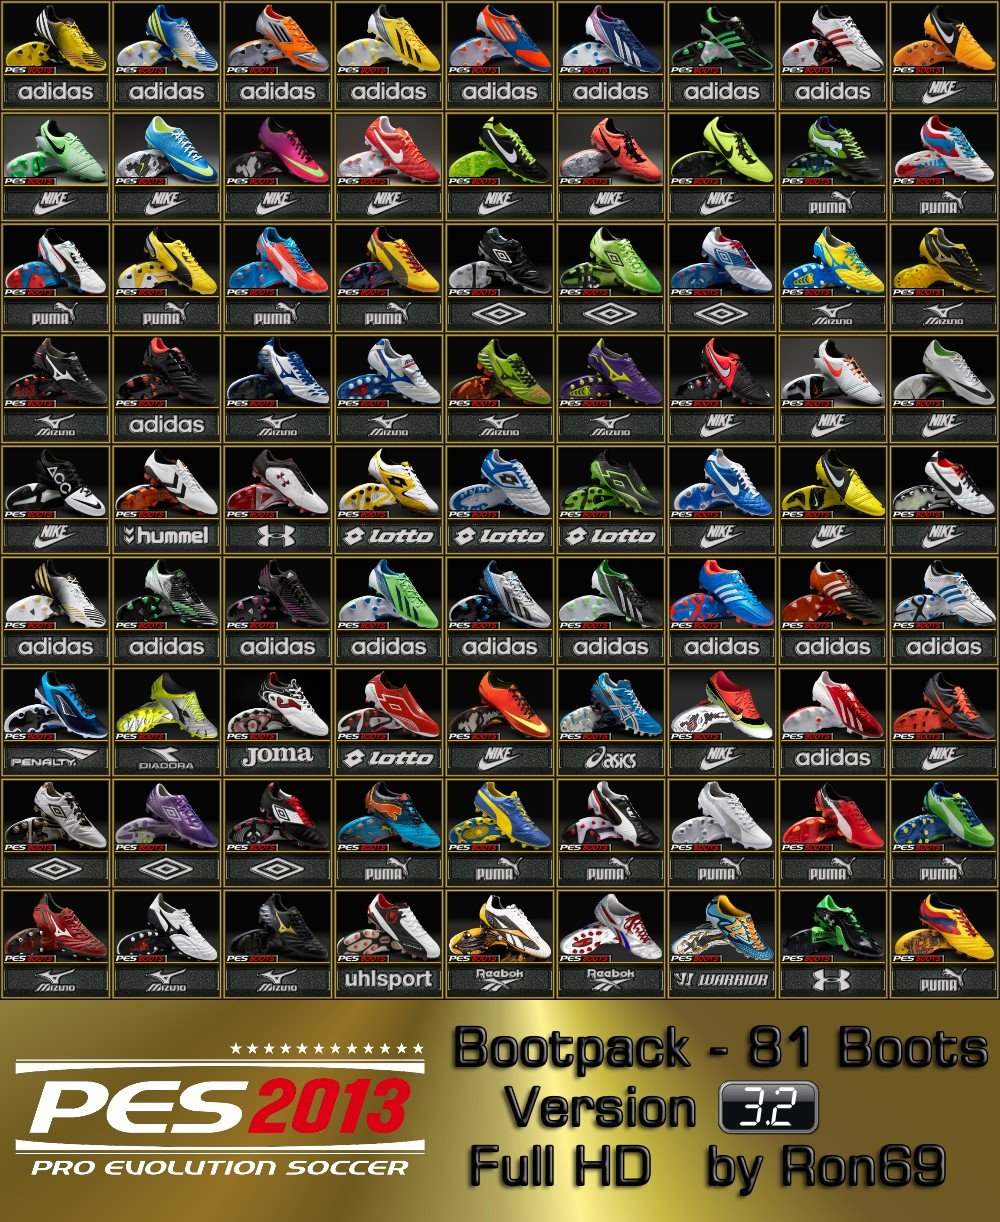 PES 2013 Bootpack 3.2 by Ron69